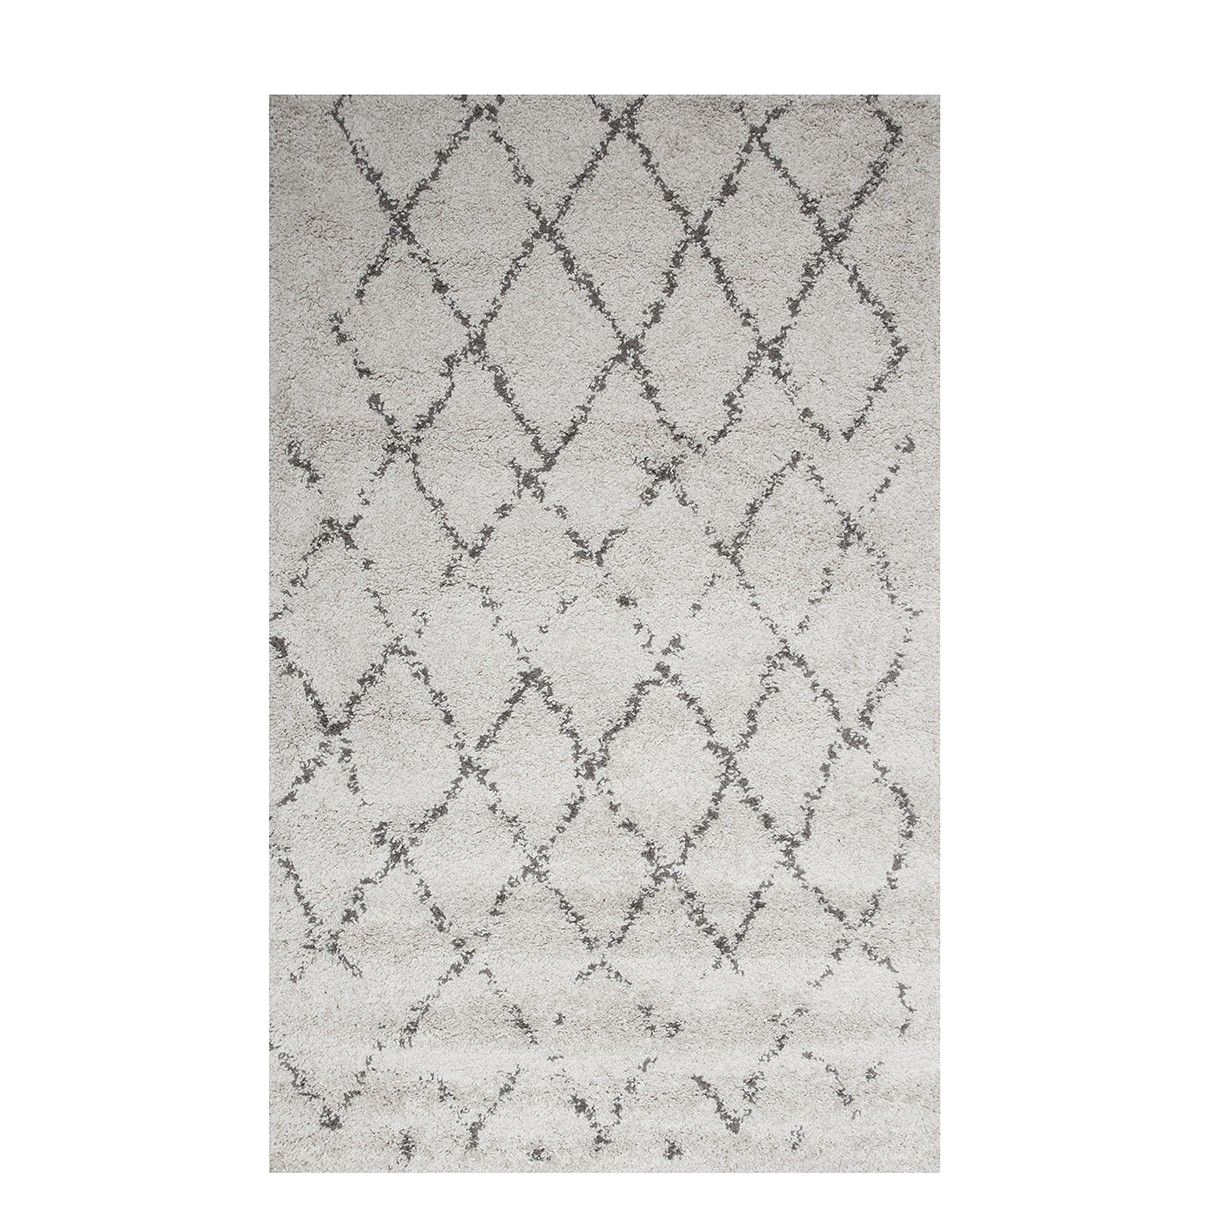 Black and White Aztec Print Rug Large Trellis Cream Shaggy Rug Moroccan the Rug House Wool